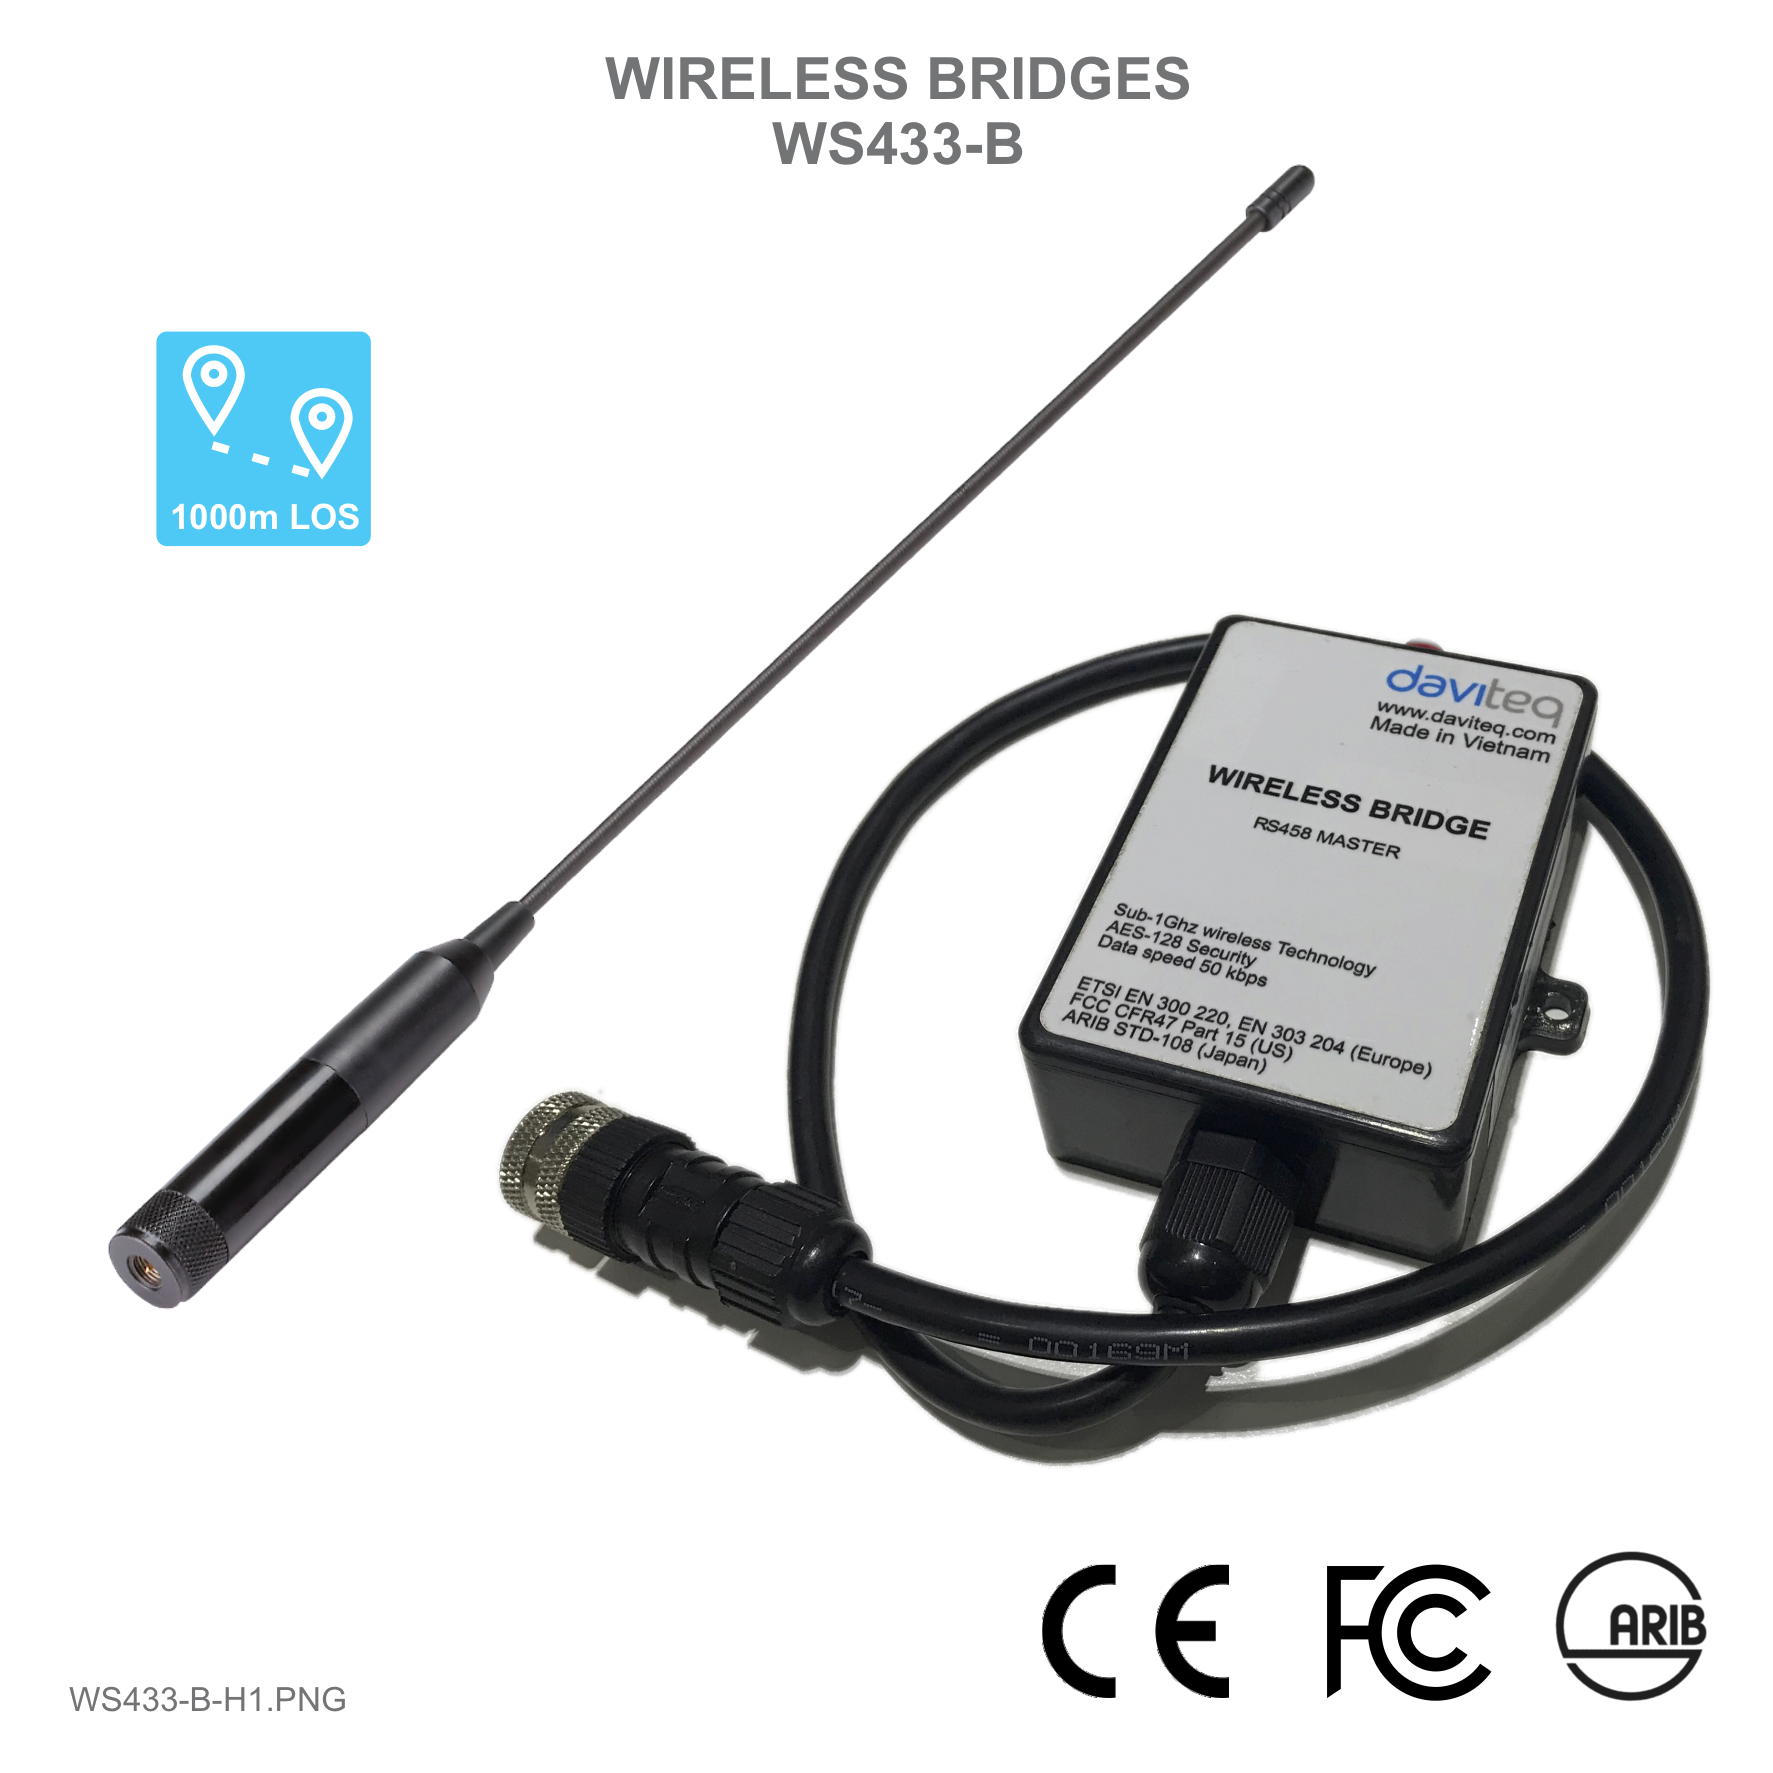 Wireless Bridges